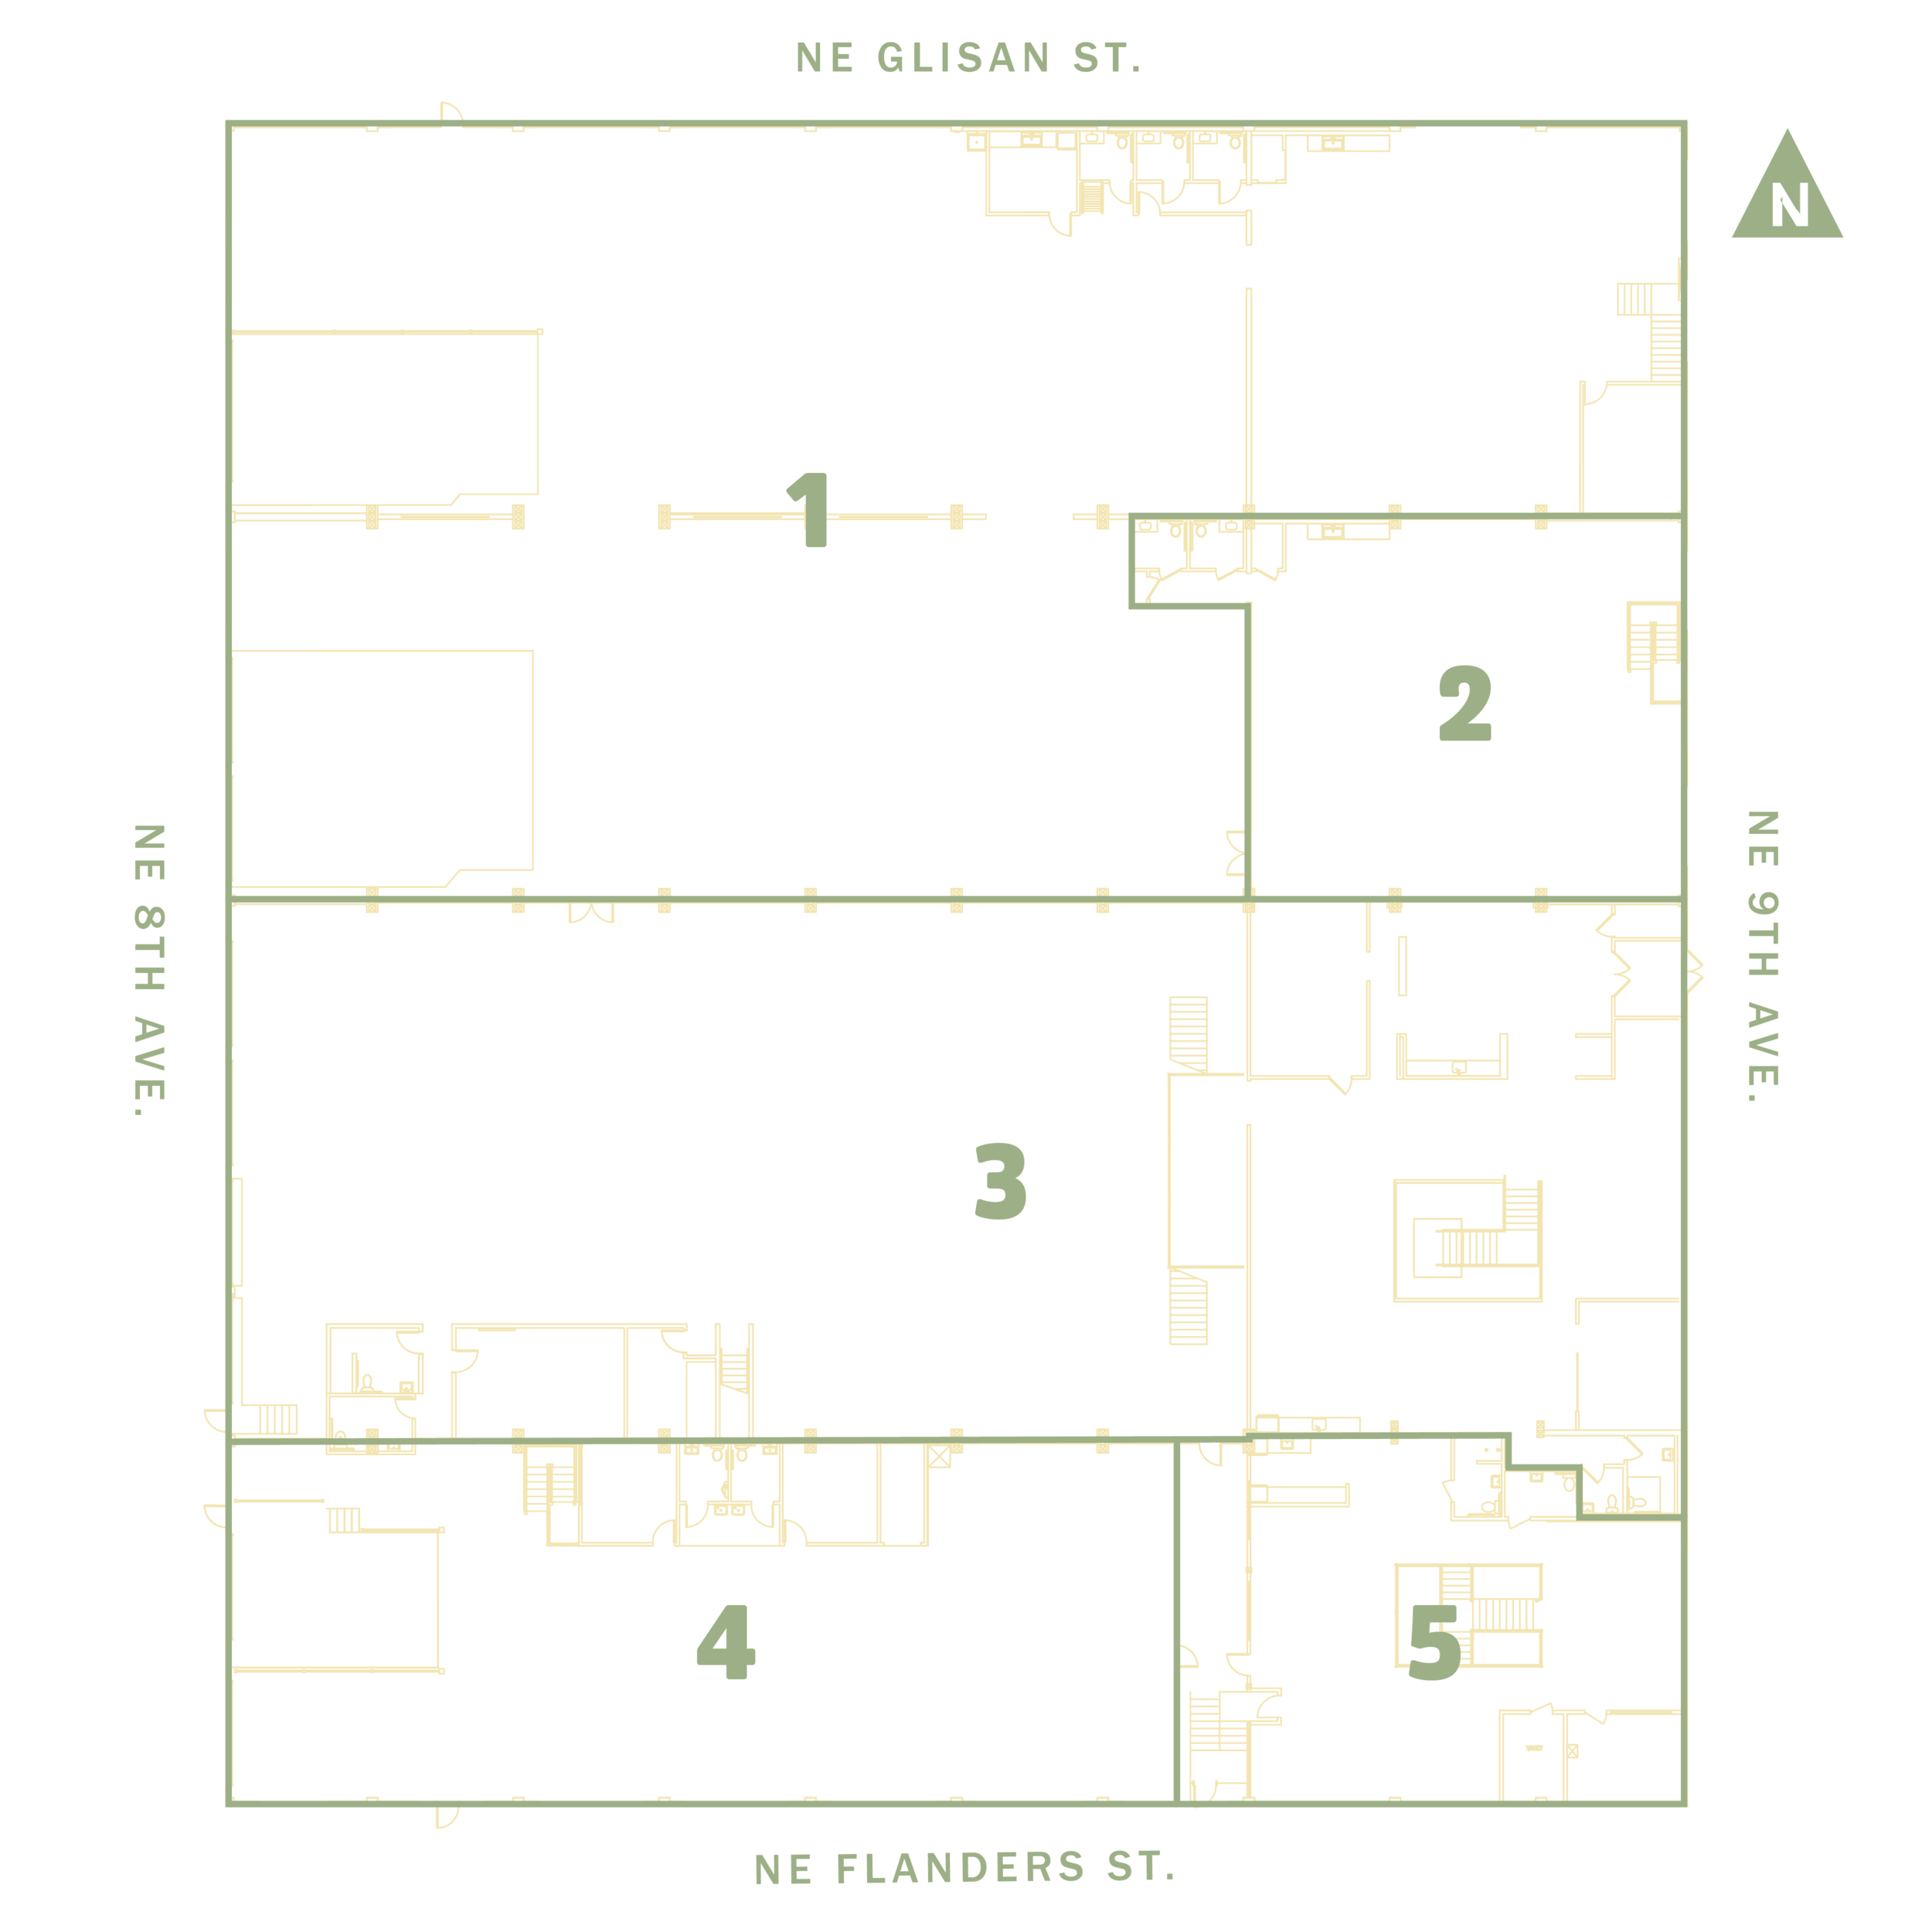 WB_BUILDING FLOOR PLANS_161025-03.png